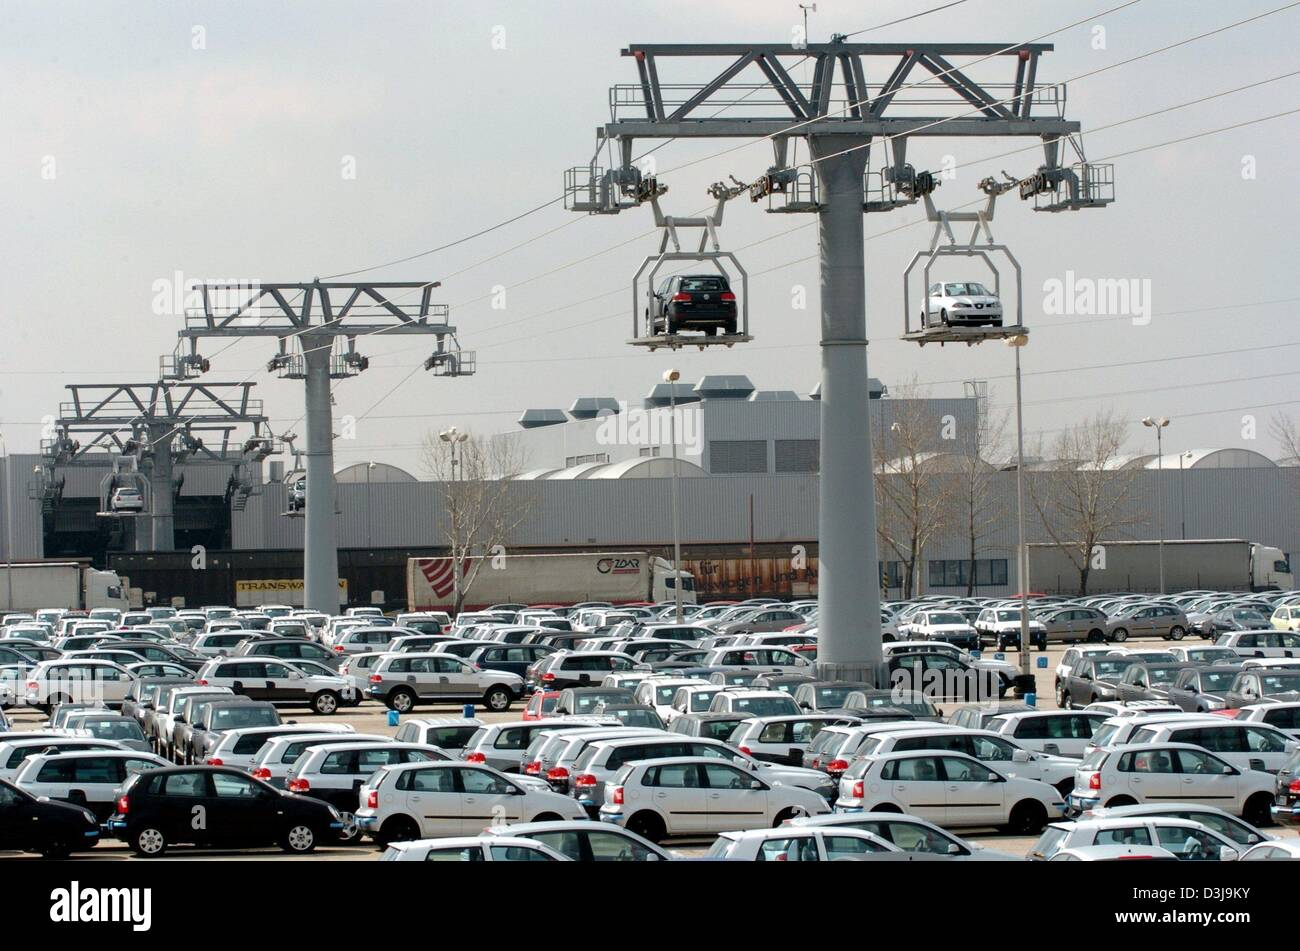 dpa volkswagen vw cars on cable railway platforms